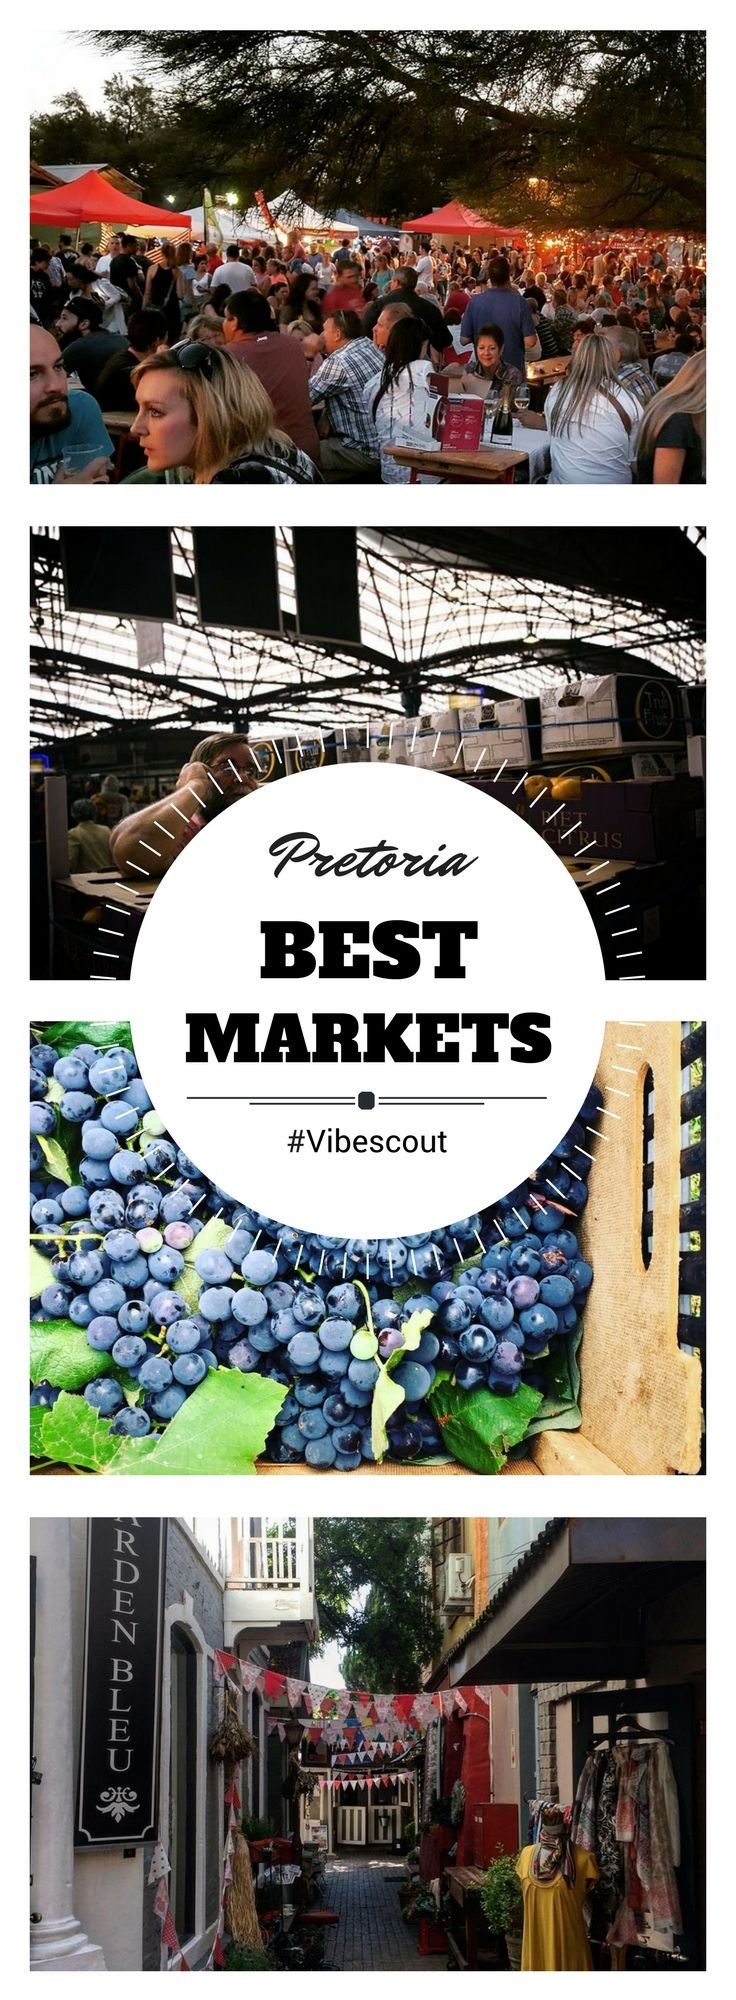 If shopping indoors is not your thing, take a look at the various markets on offer. #Marketpretoria#foodmarket#goodsmarket